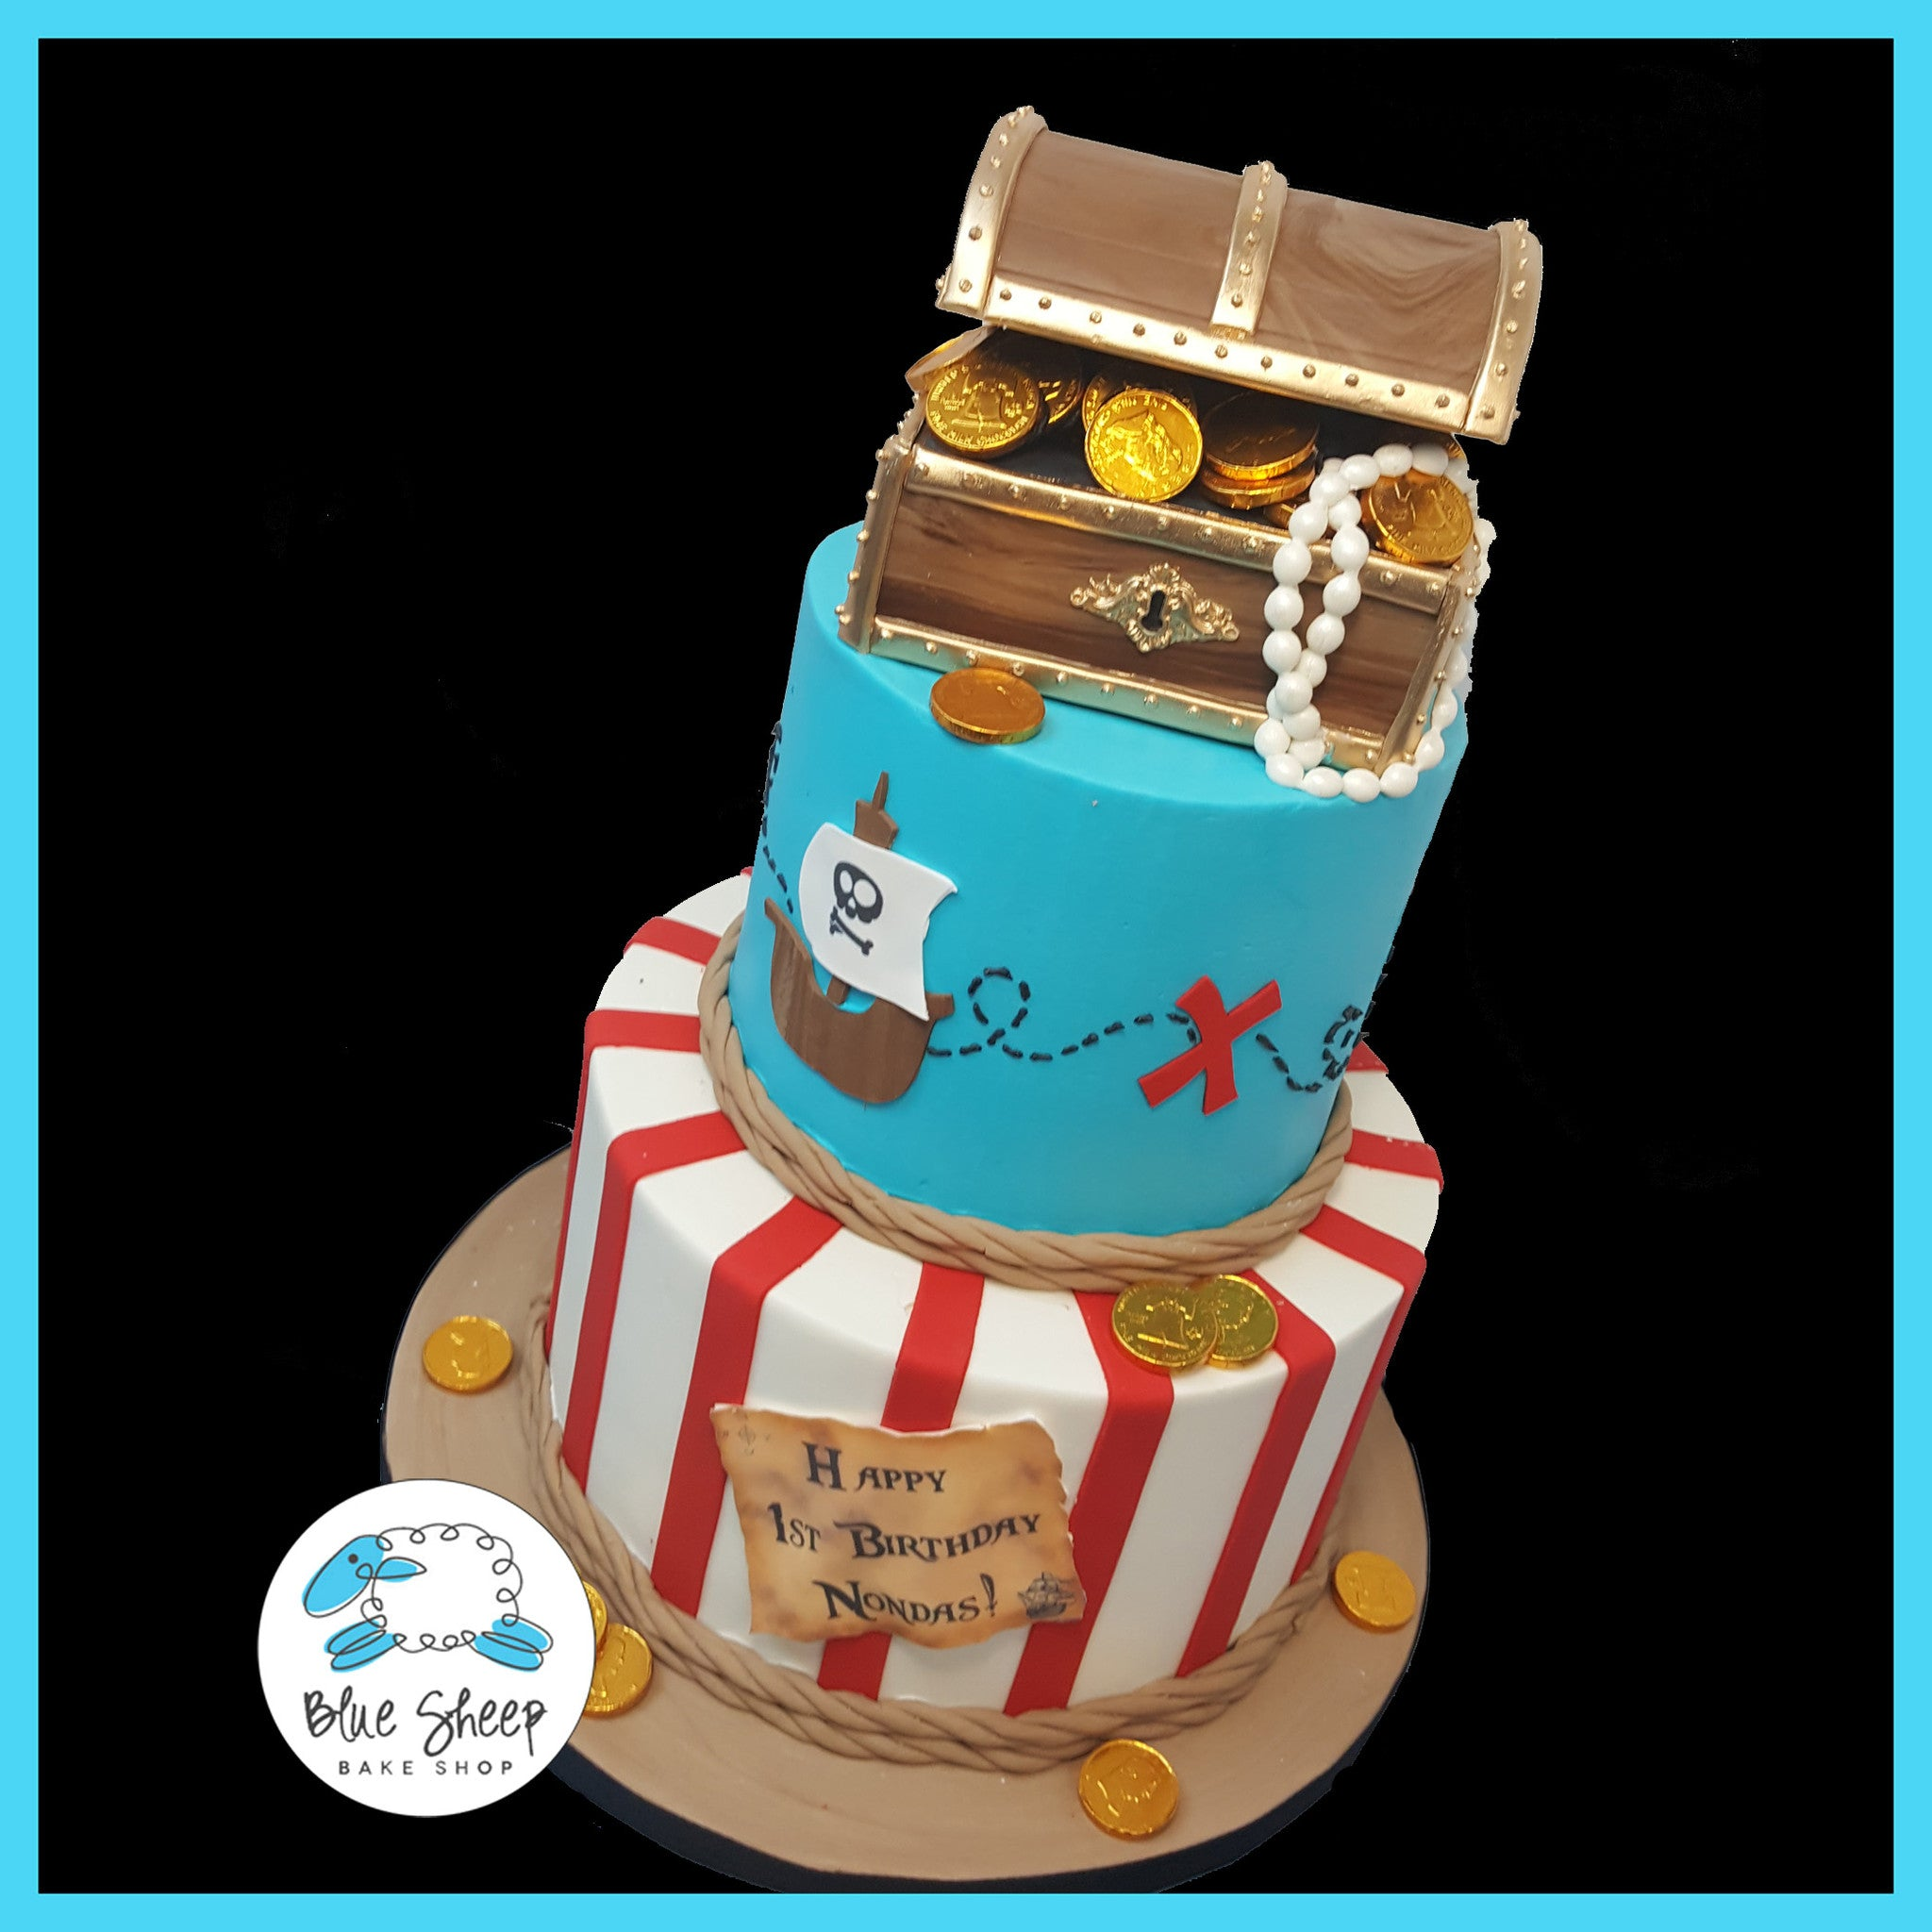 Outstanding Pirate Birthday Cake Blue Sheep Bake Shop Funny Birthday Cards Online Alyptdamsfinfo